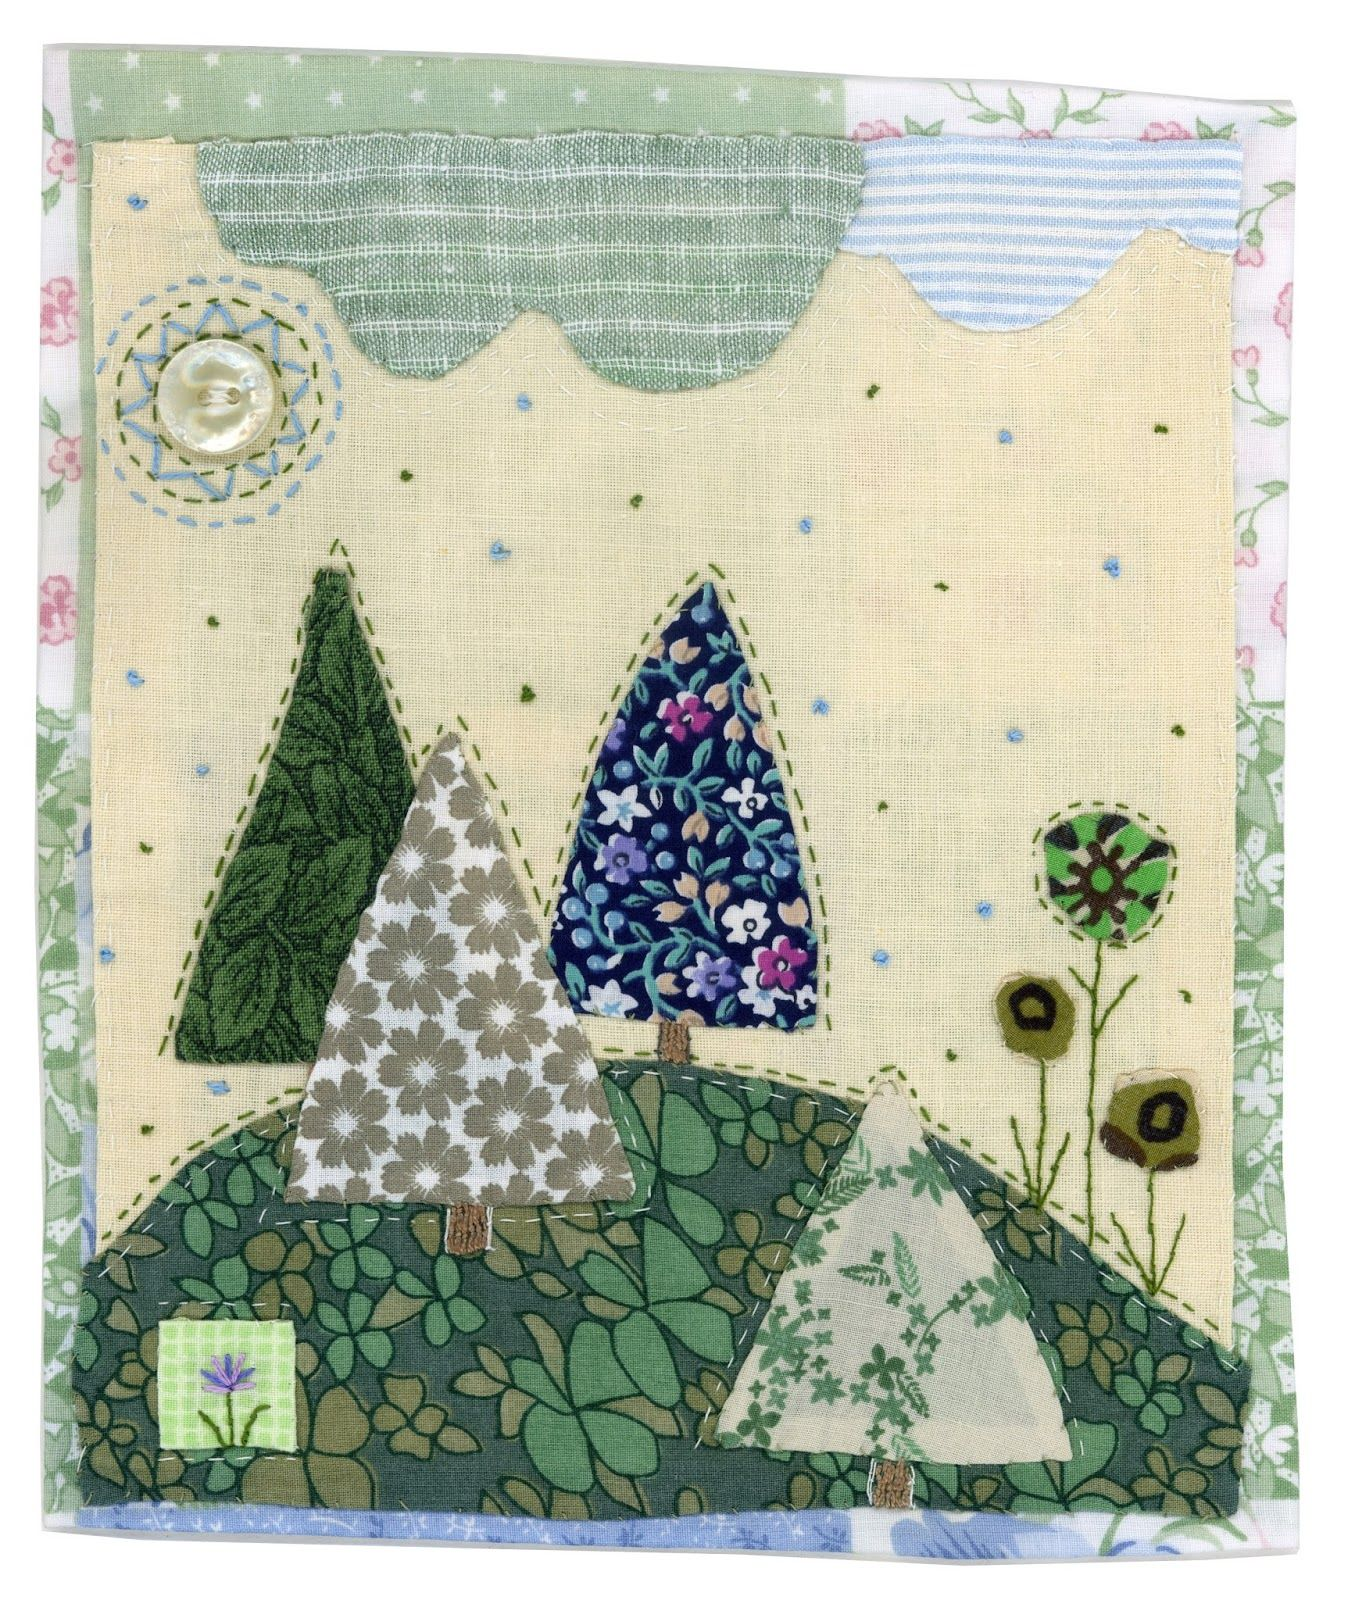 Green pleasant by Sharon Blackman   Fabric Collage   Pinterest ...